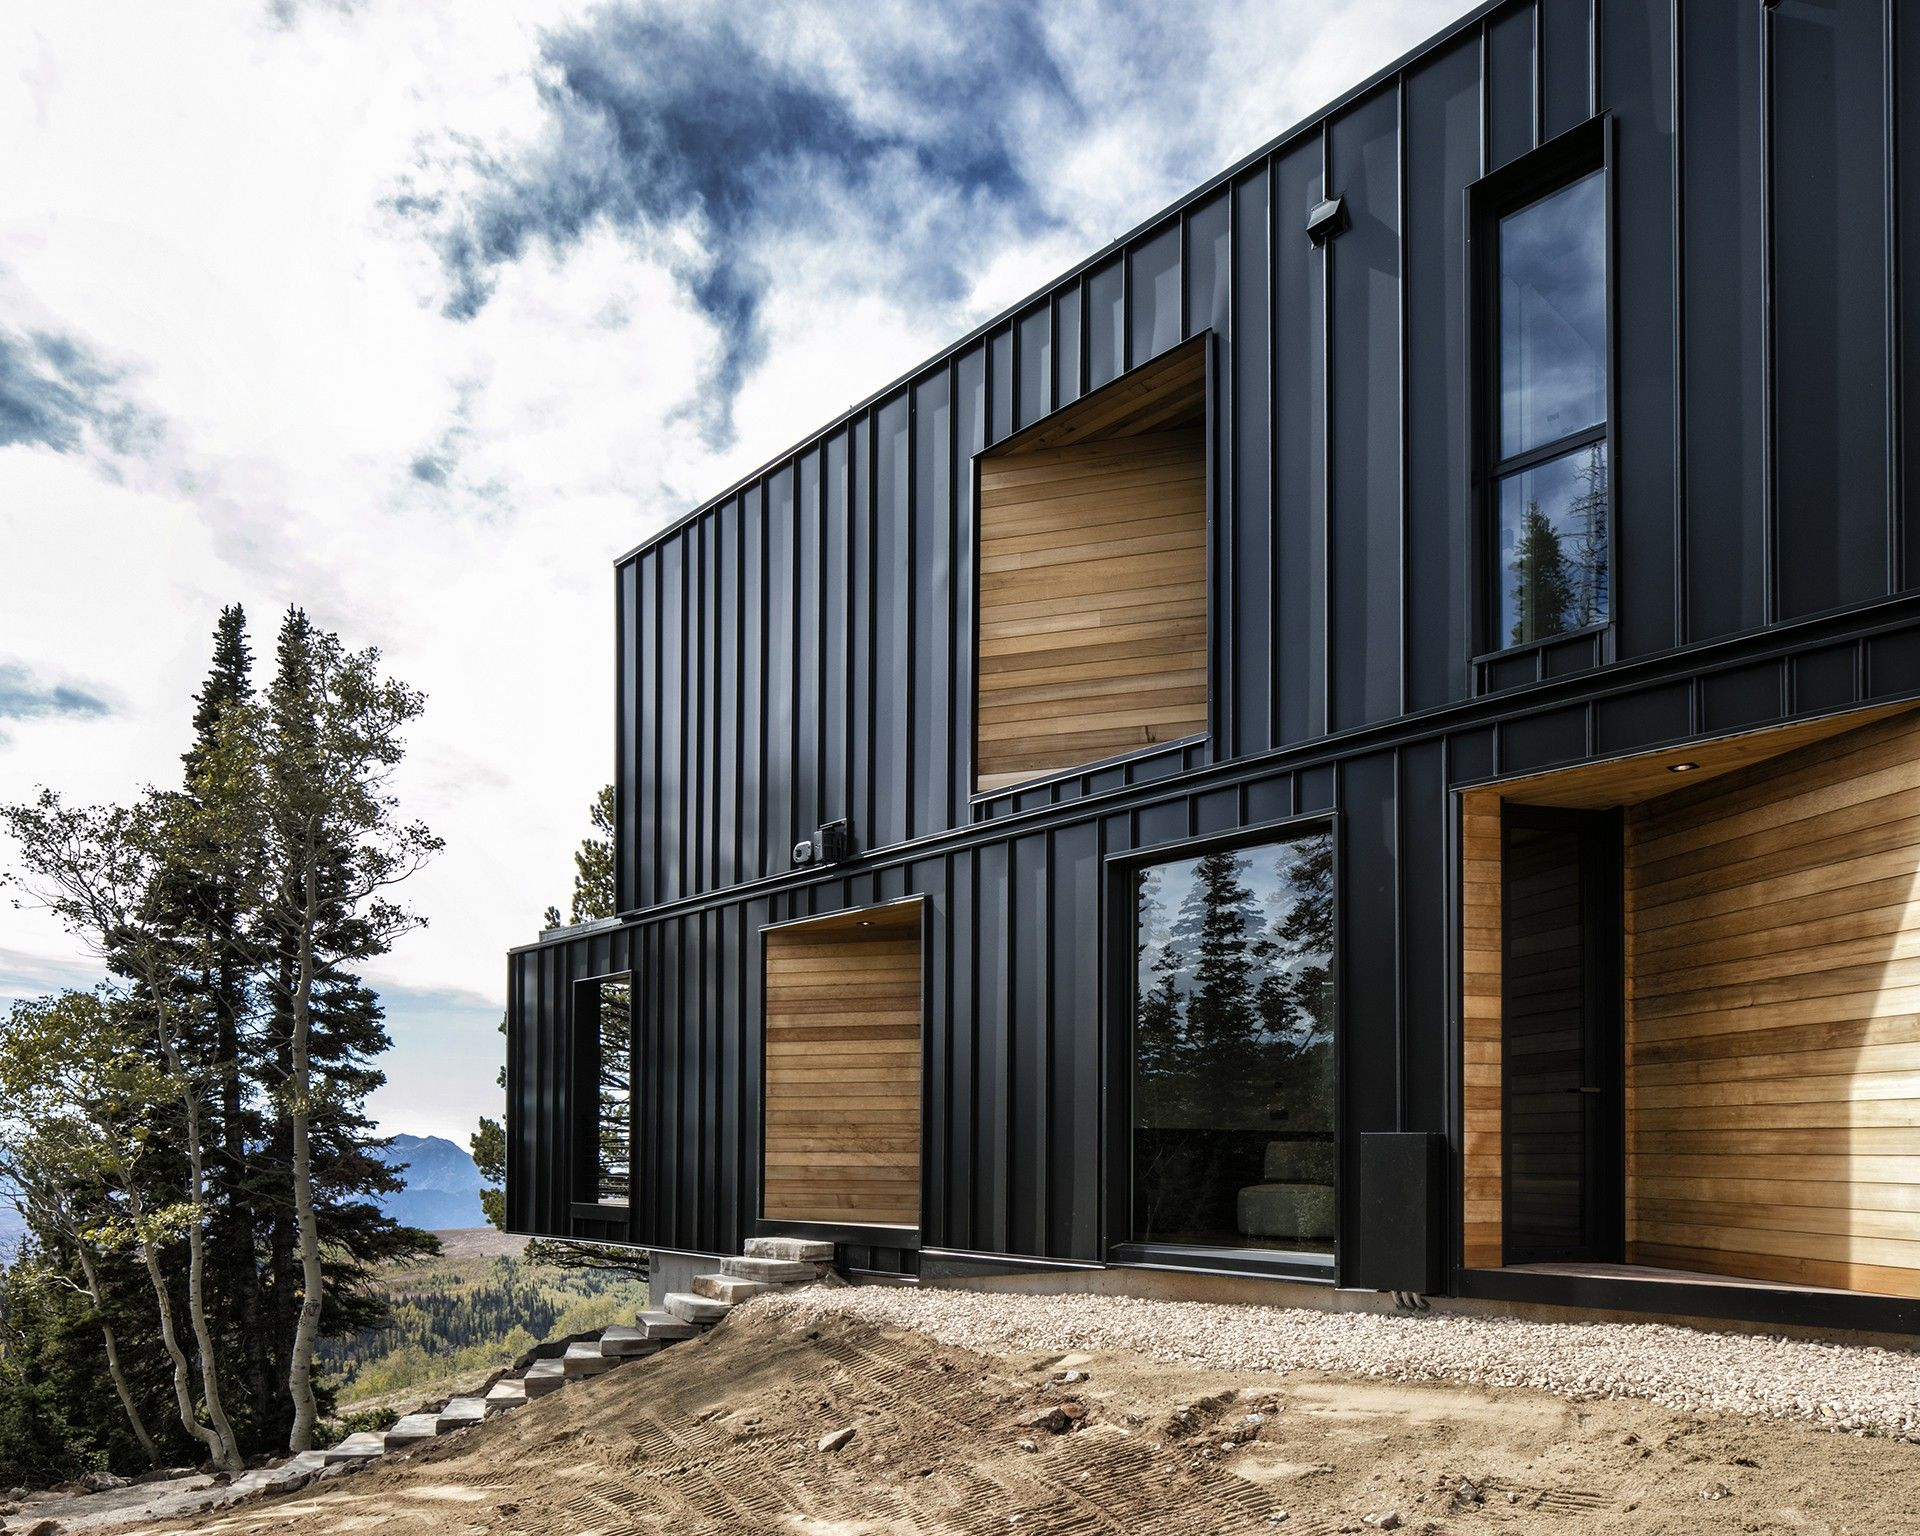 The Kinii The Falcon S Nest By The Italian Architects Of Obicua Floornature In 2020 House Cladding Architect Lodge